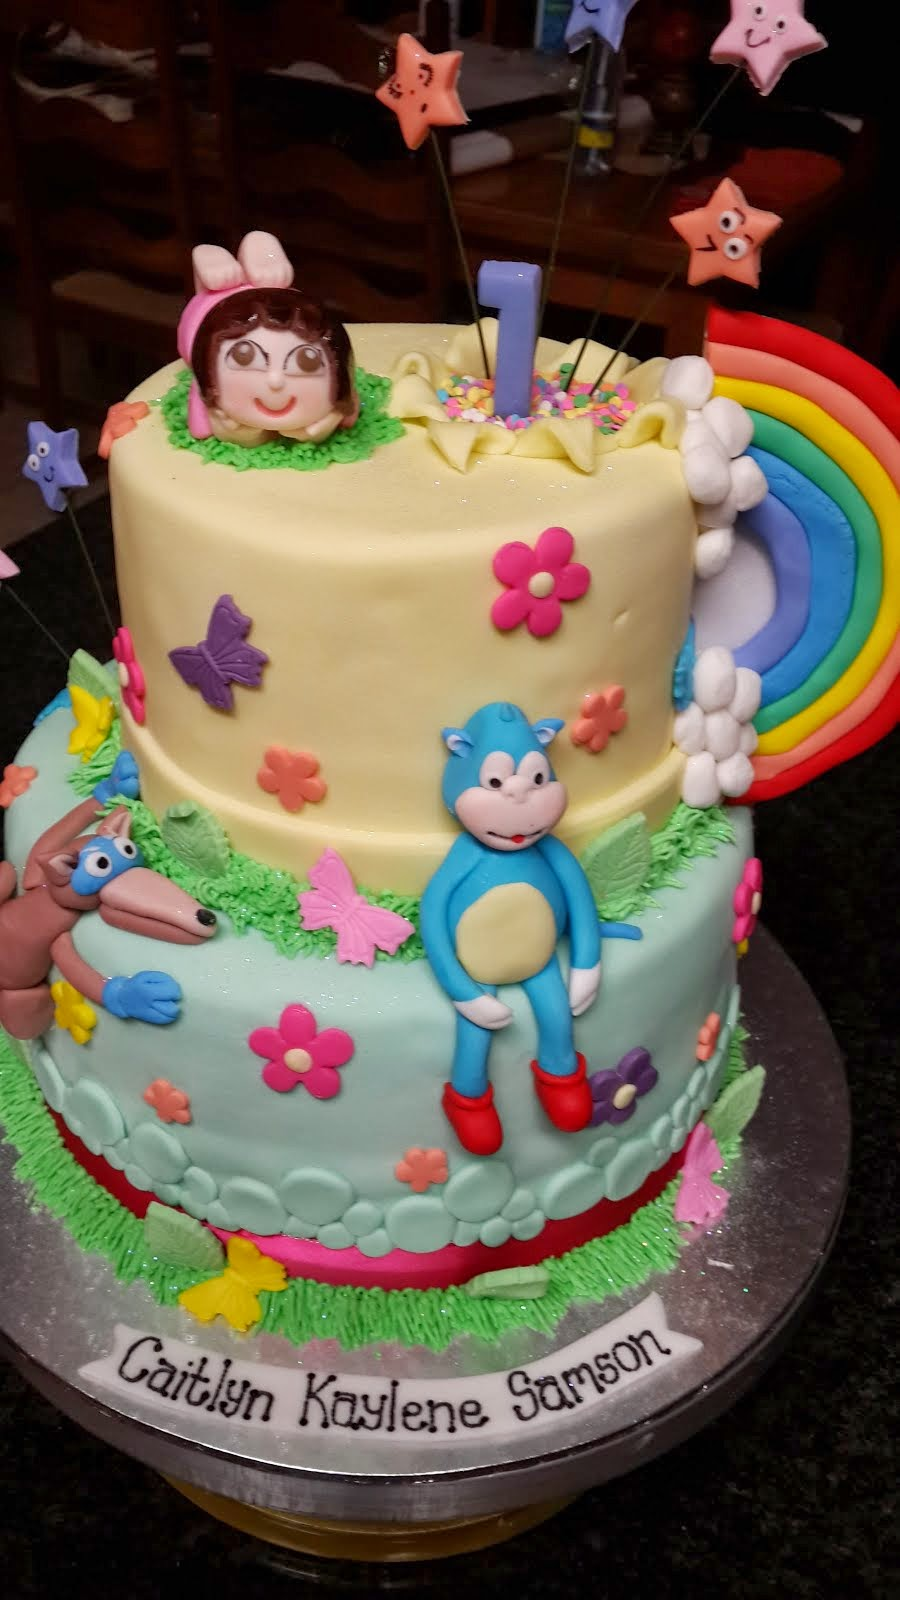 Dora the Explorer Cake for Caitlan